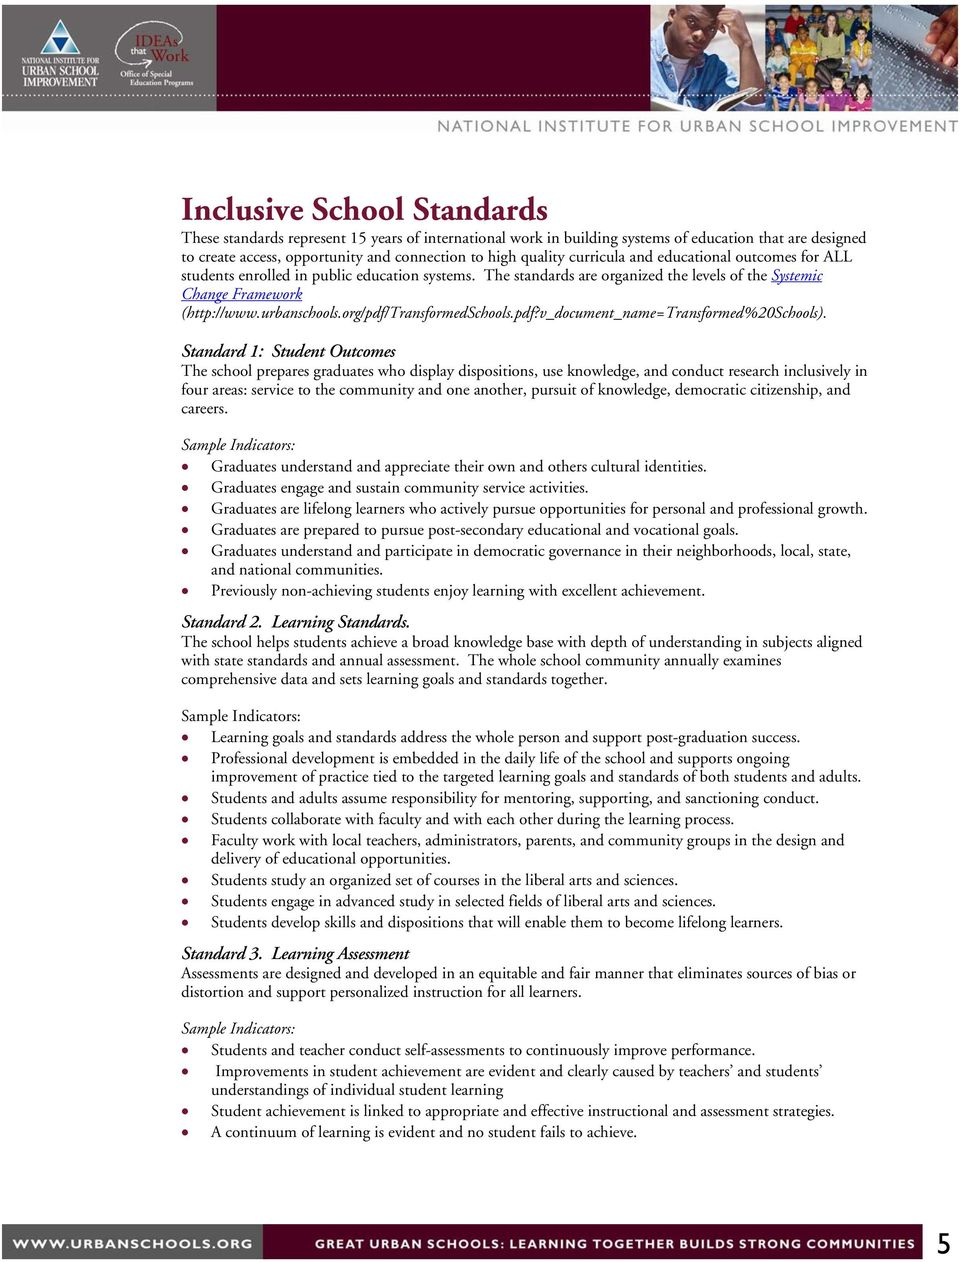 org/pdf/transformedschools.pdf?v_document_name=transformed%20schools).